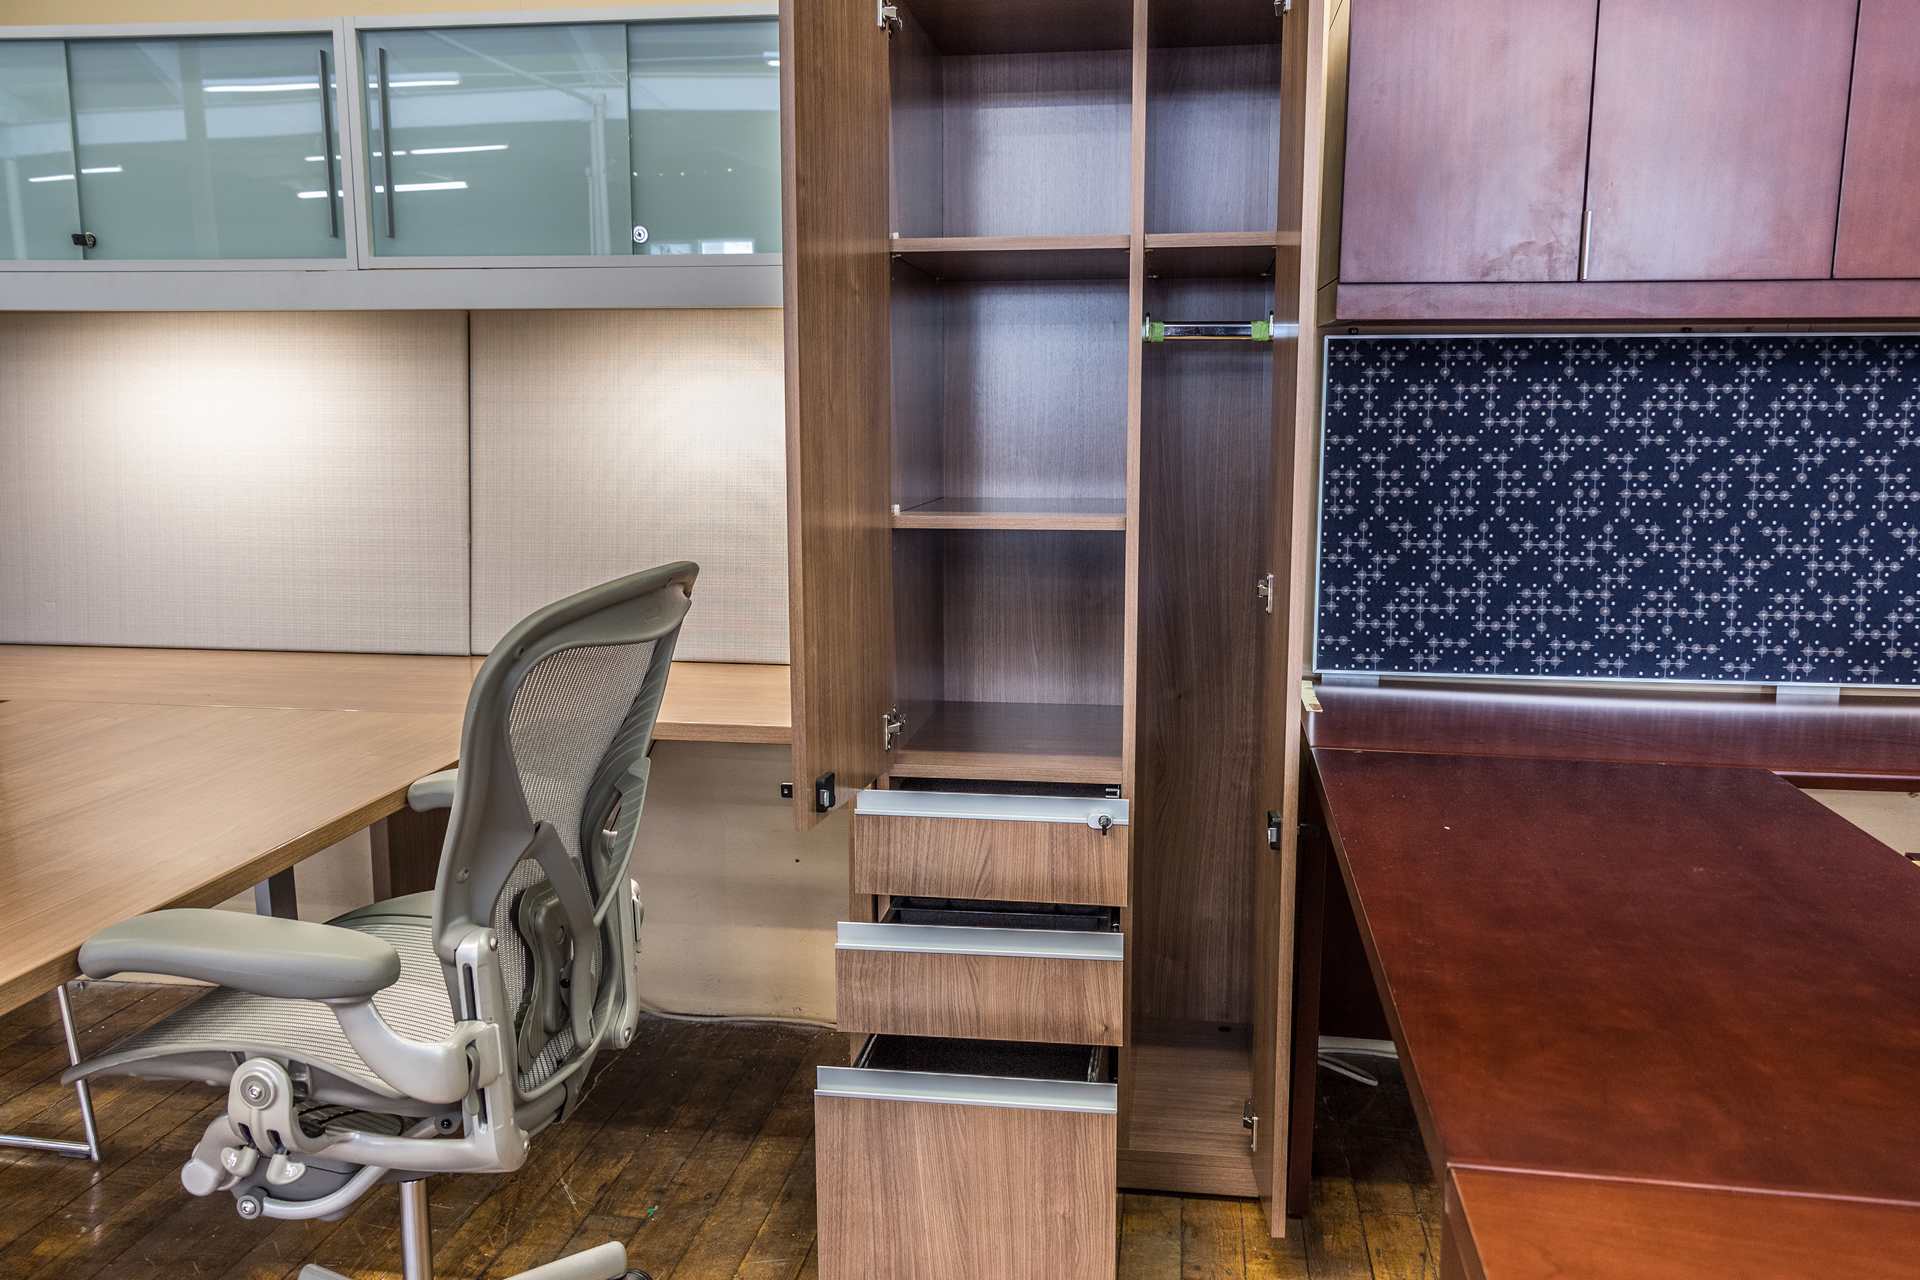 peartreeofficefurniture_peartreeofficefurniture_peartreeofficefurniture_img_9971_1.jpg